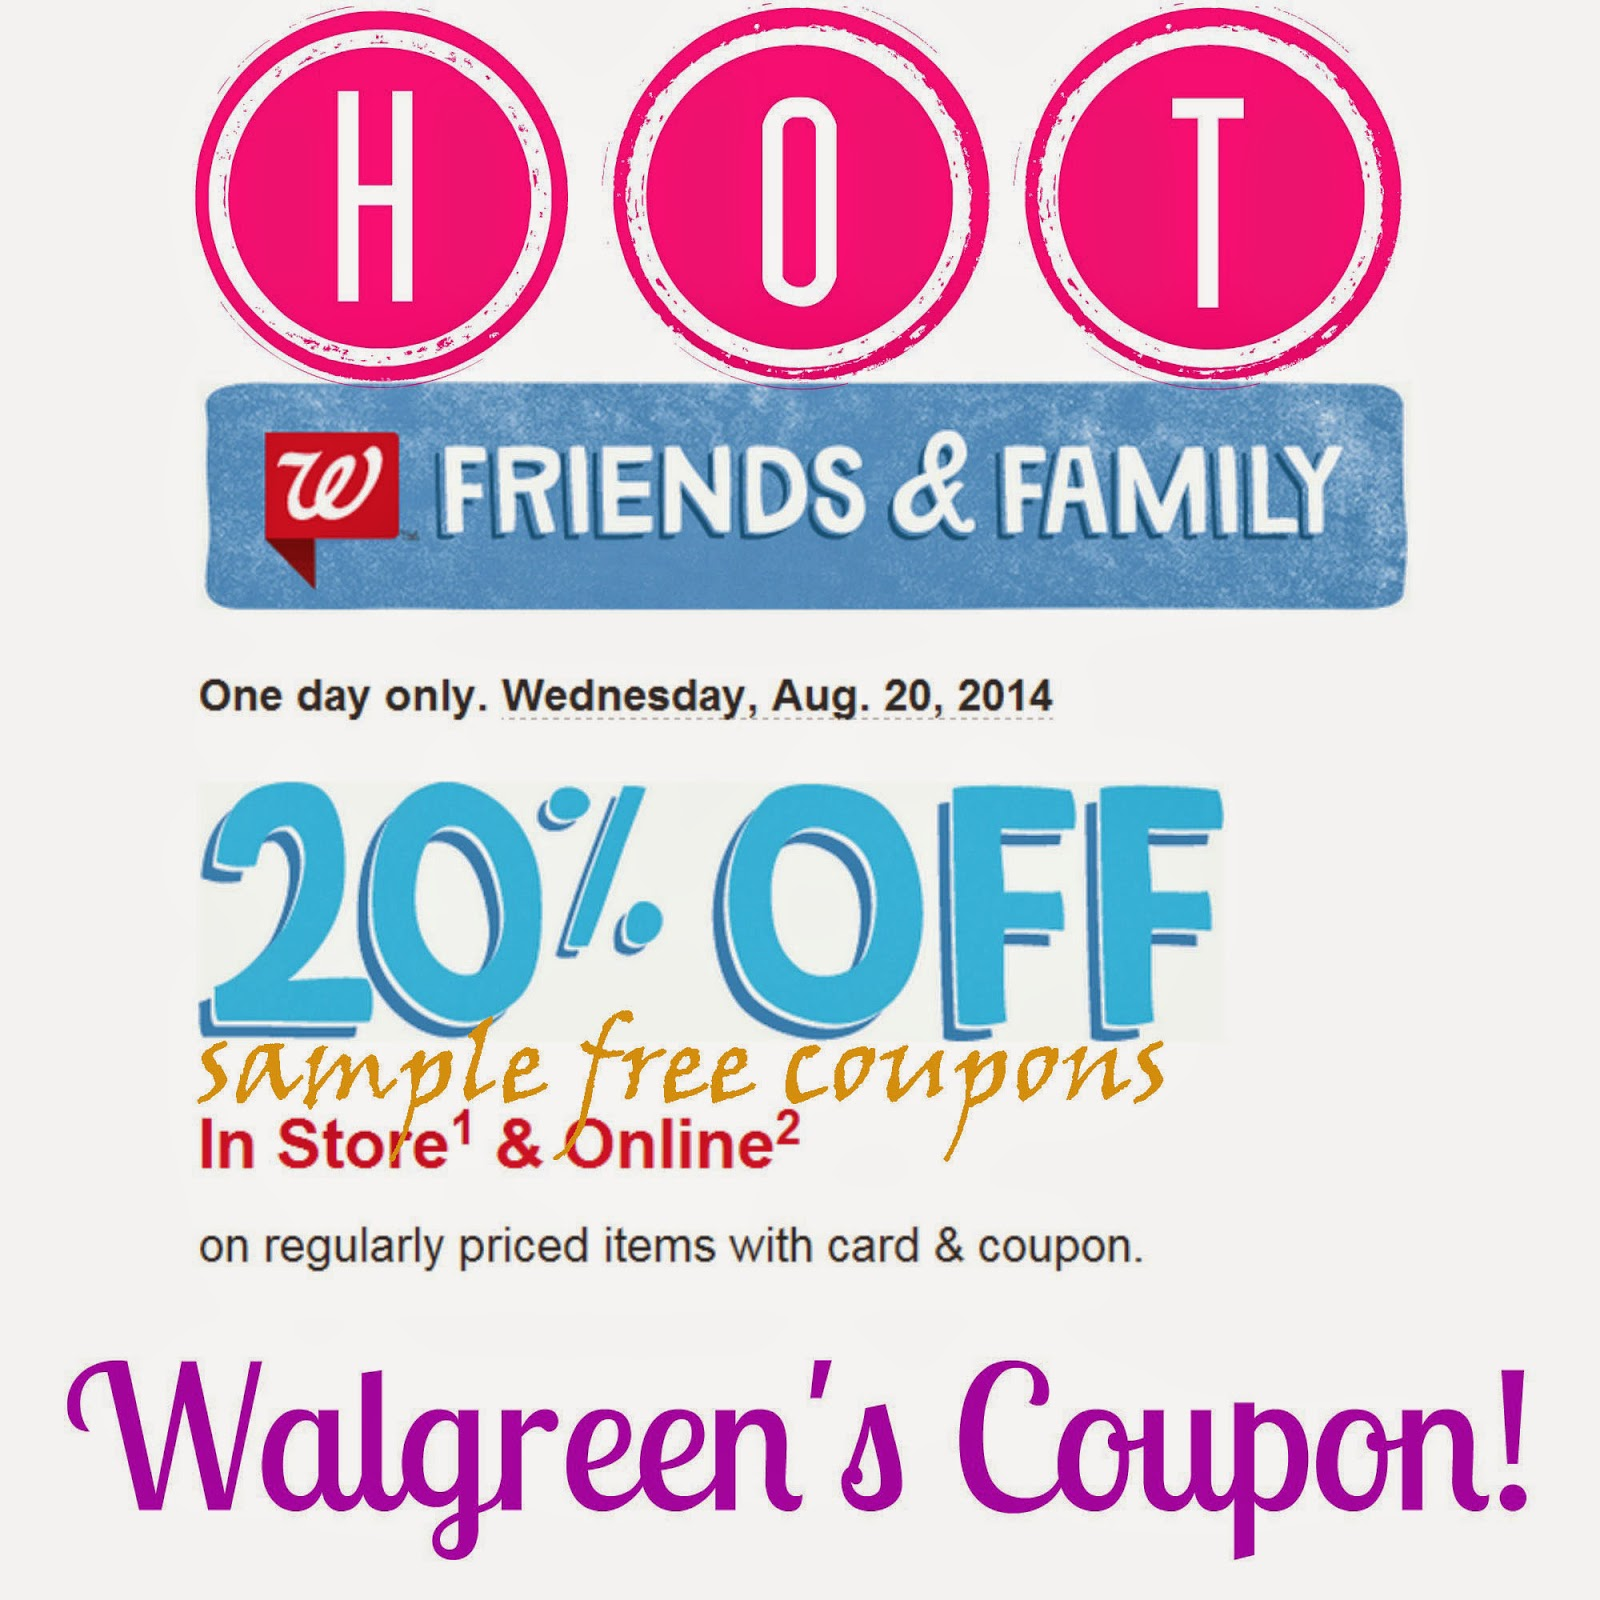 Walgreens pharmacy discount coupons